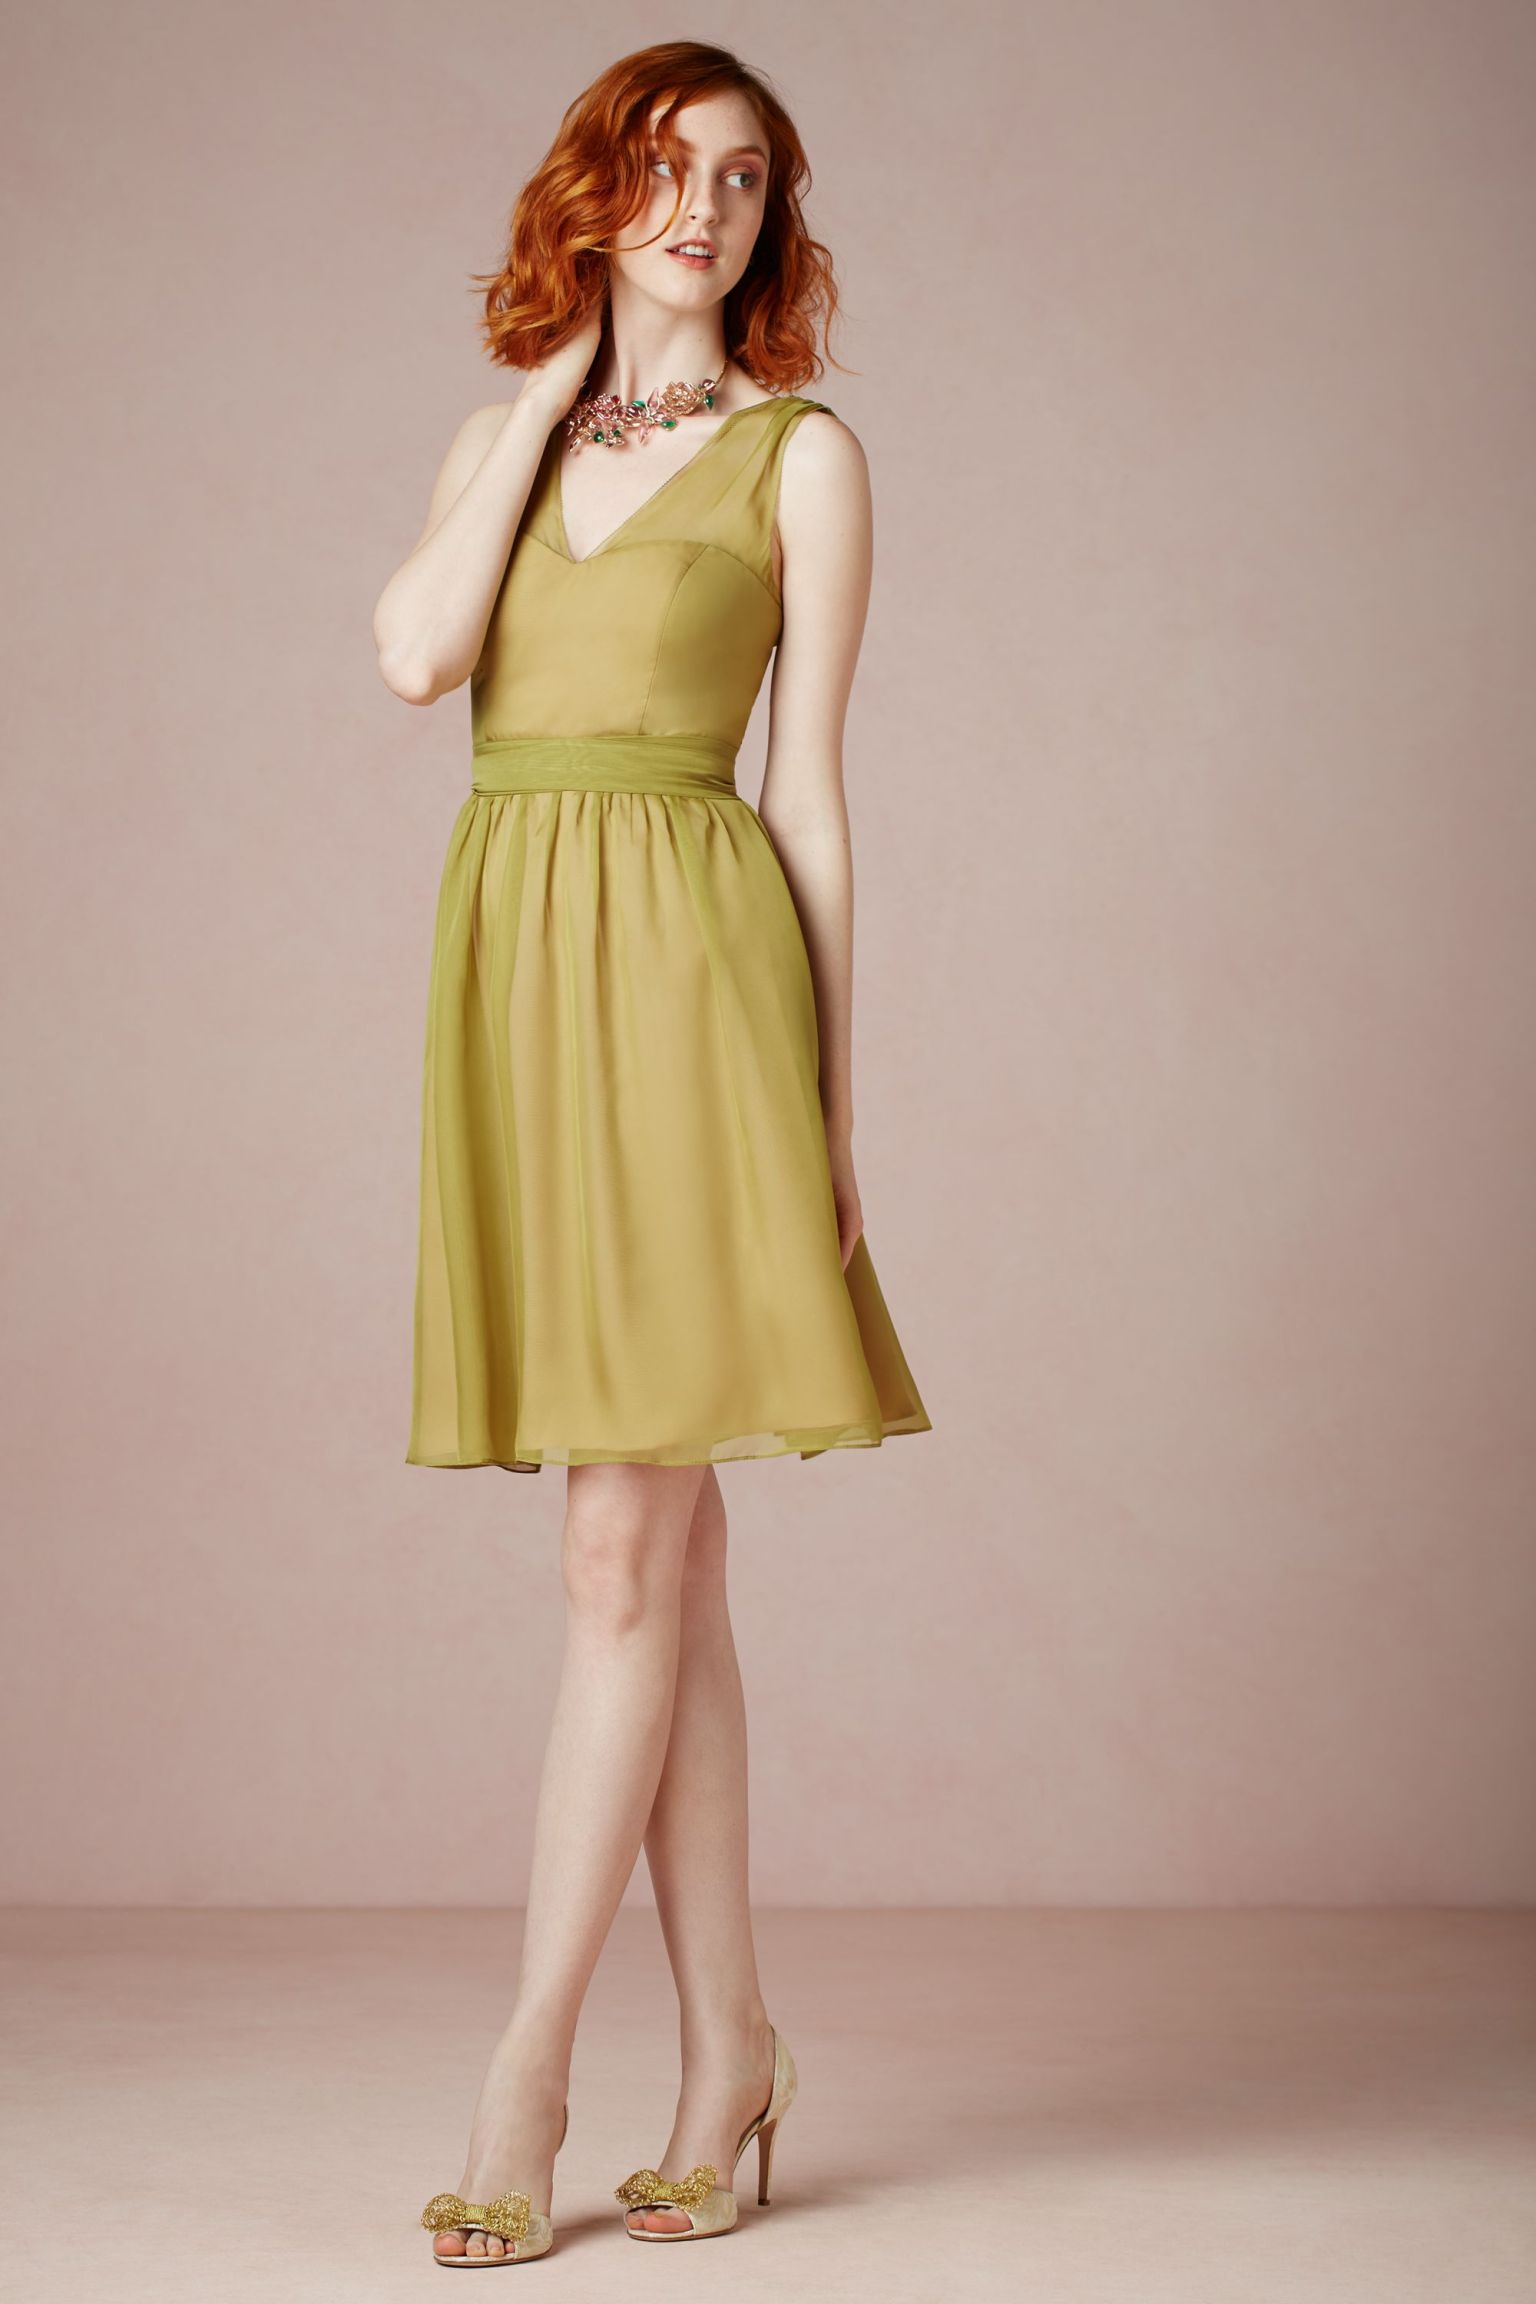 Dresses For A Fall Wedding Guest 2013 Fall Wedding Guest Dress Ideas